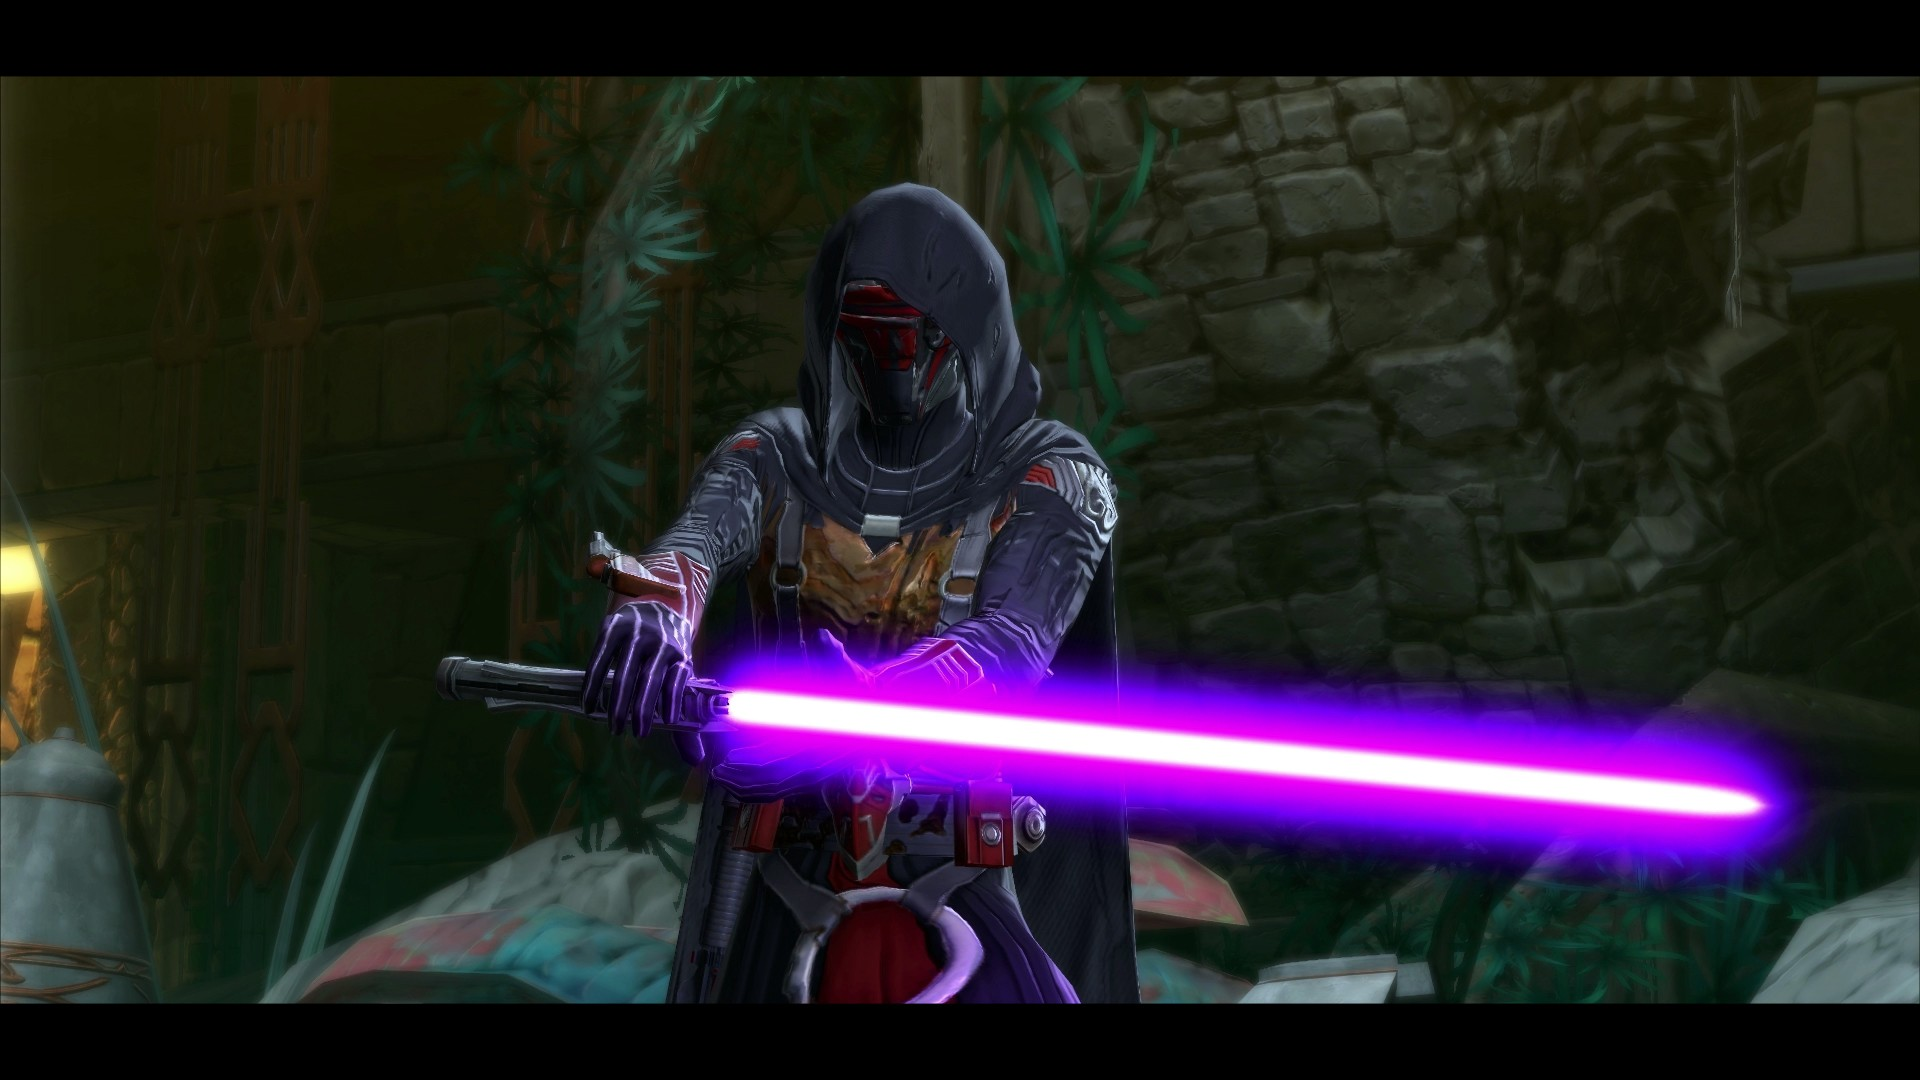 Star-Wars-The-Old-Republic-Launches-Revan-Expansion-on-December-9-Video-and-Gallery-461216-5